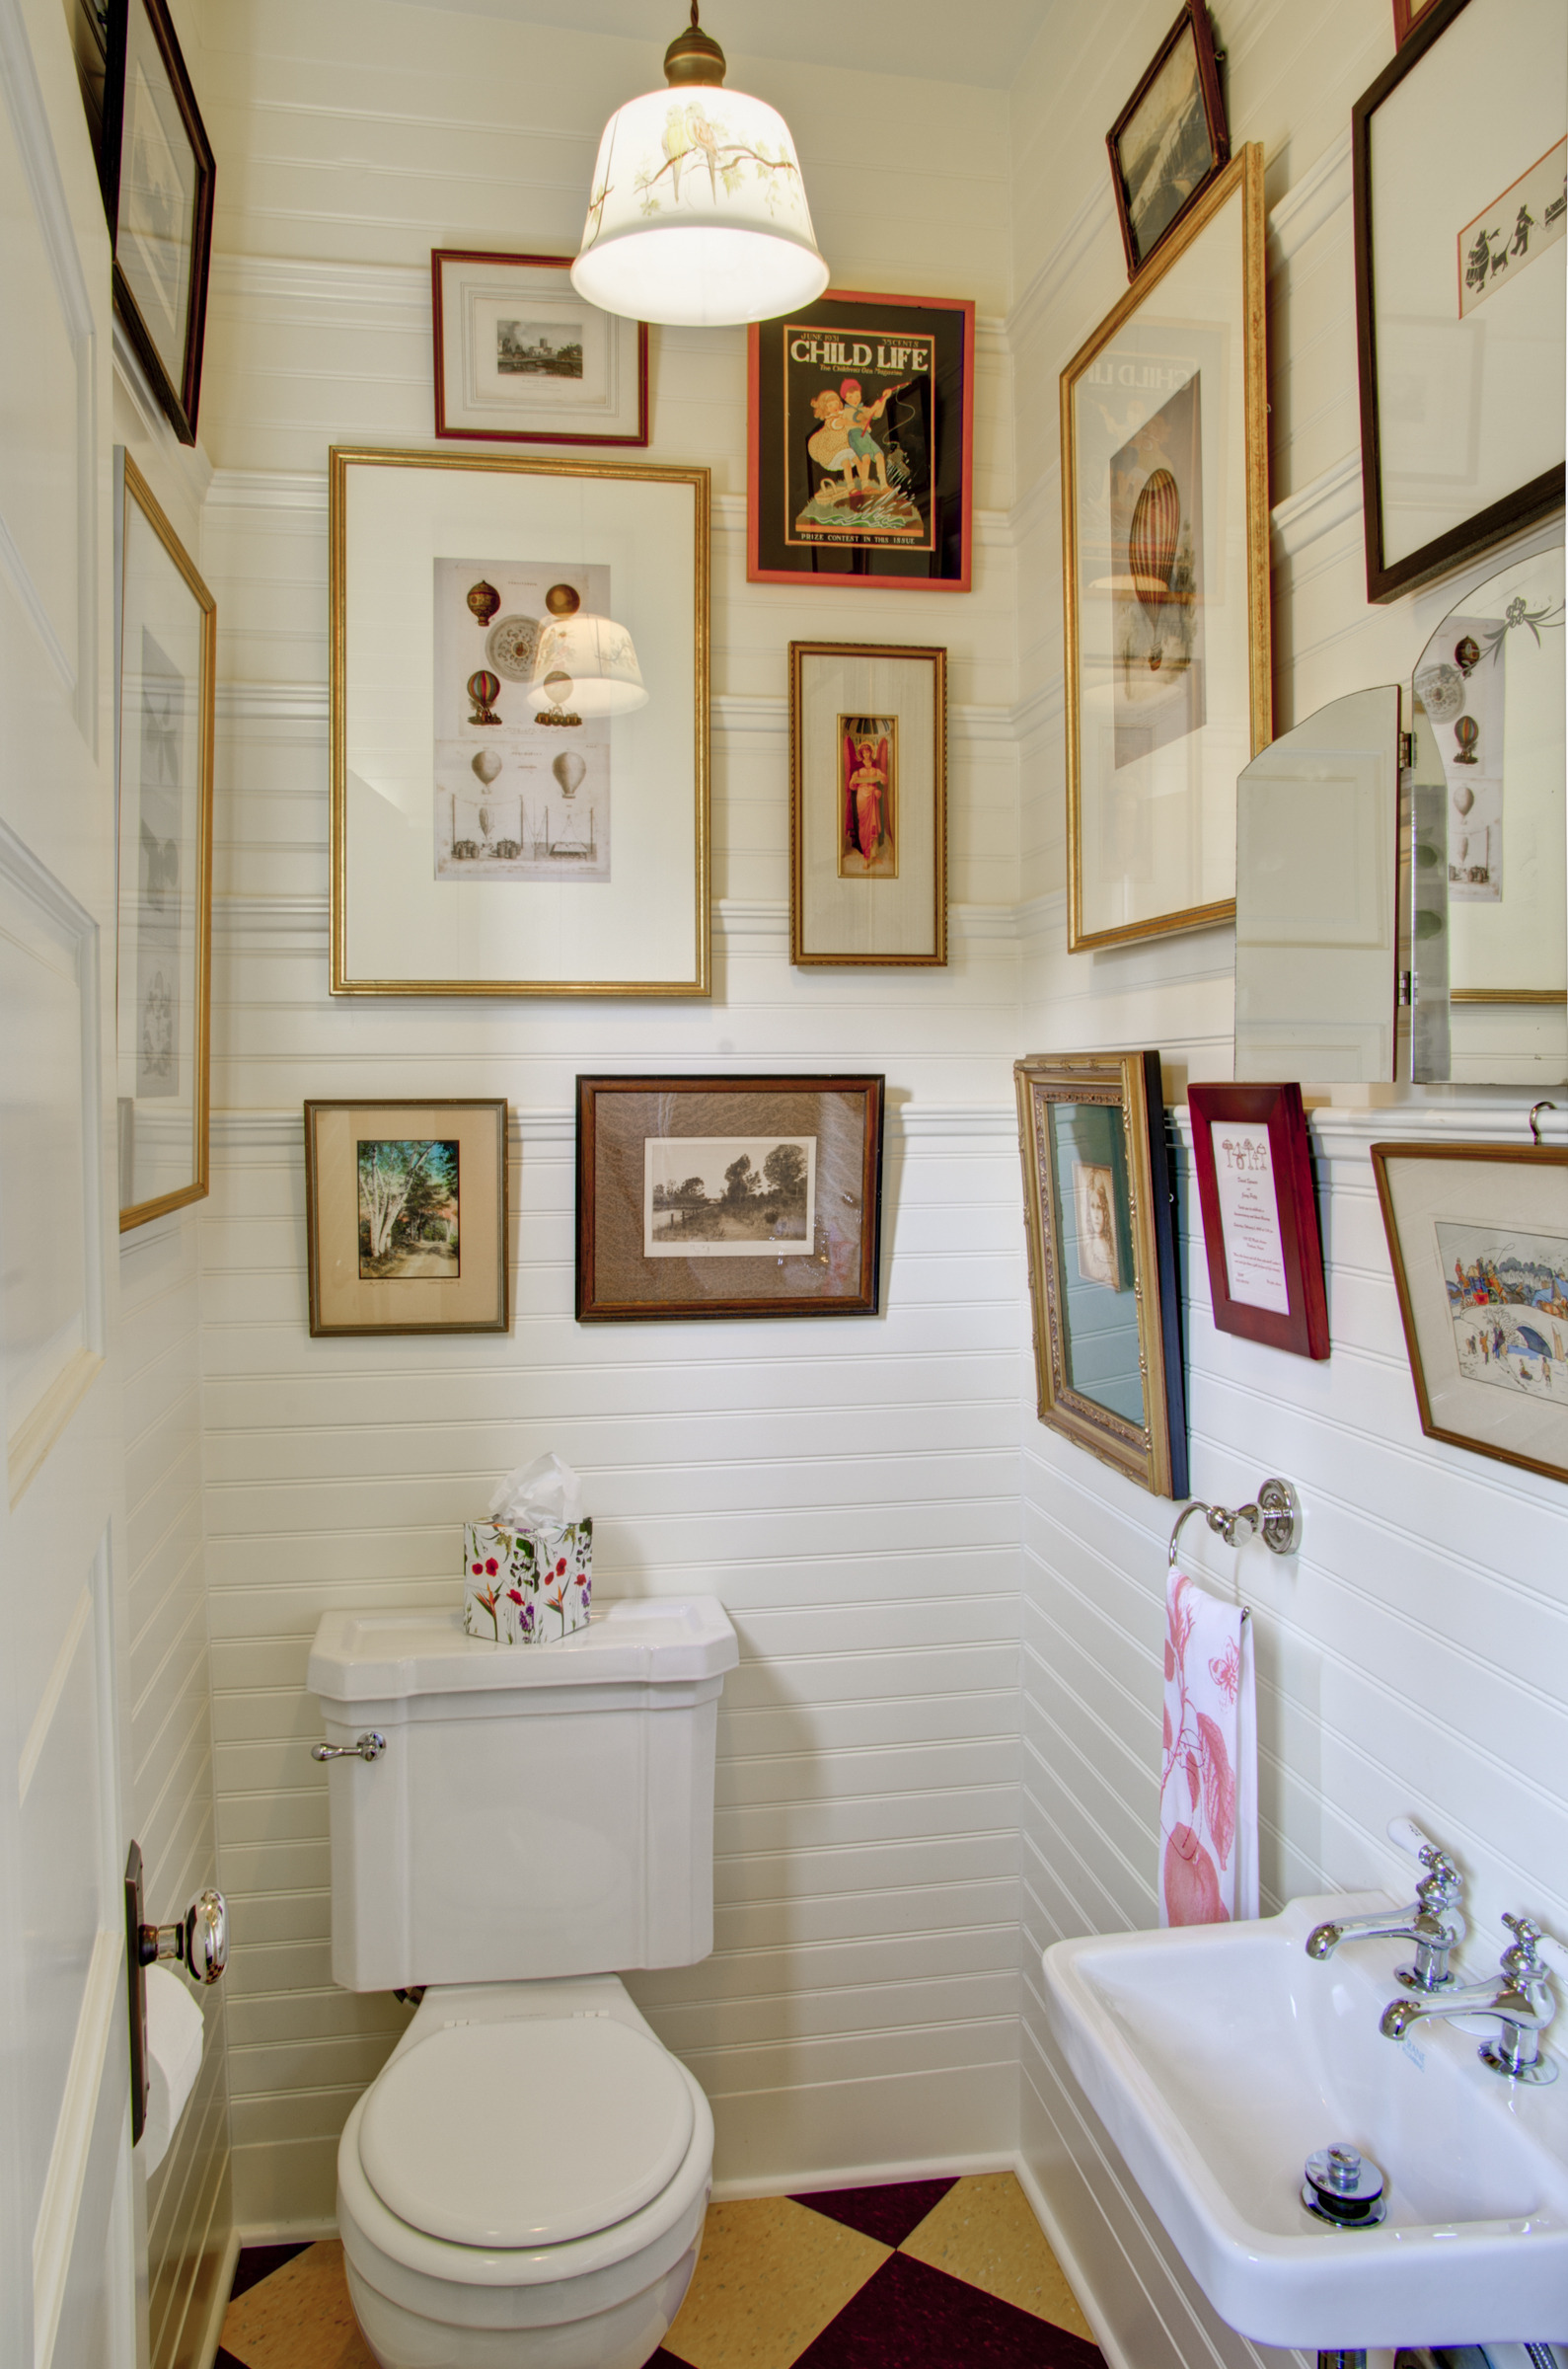 How to Decorate A Bathroom Wall New Wall Ideas Small Living Room for Kitchen Bathroom Decorating